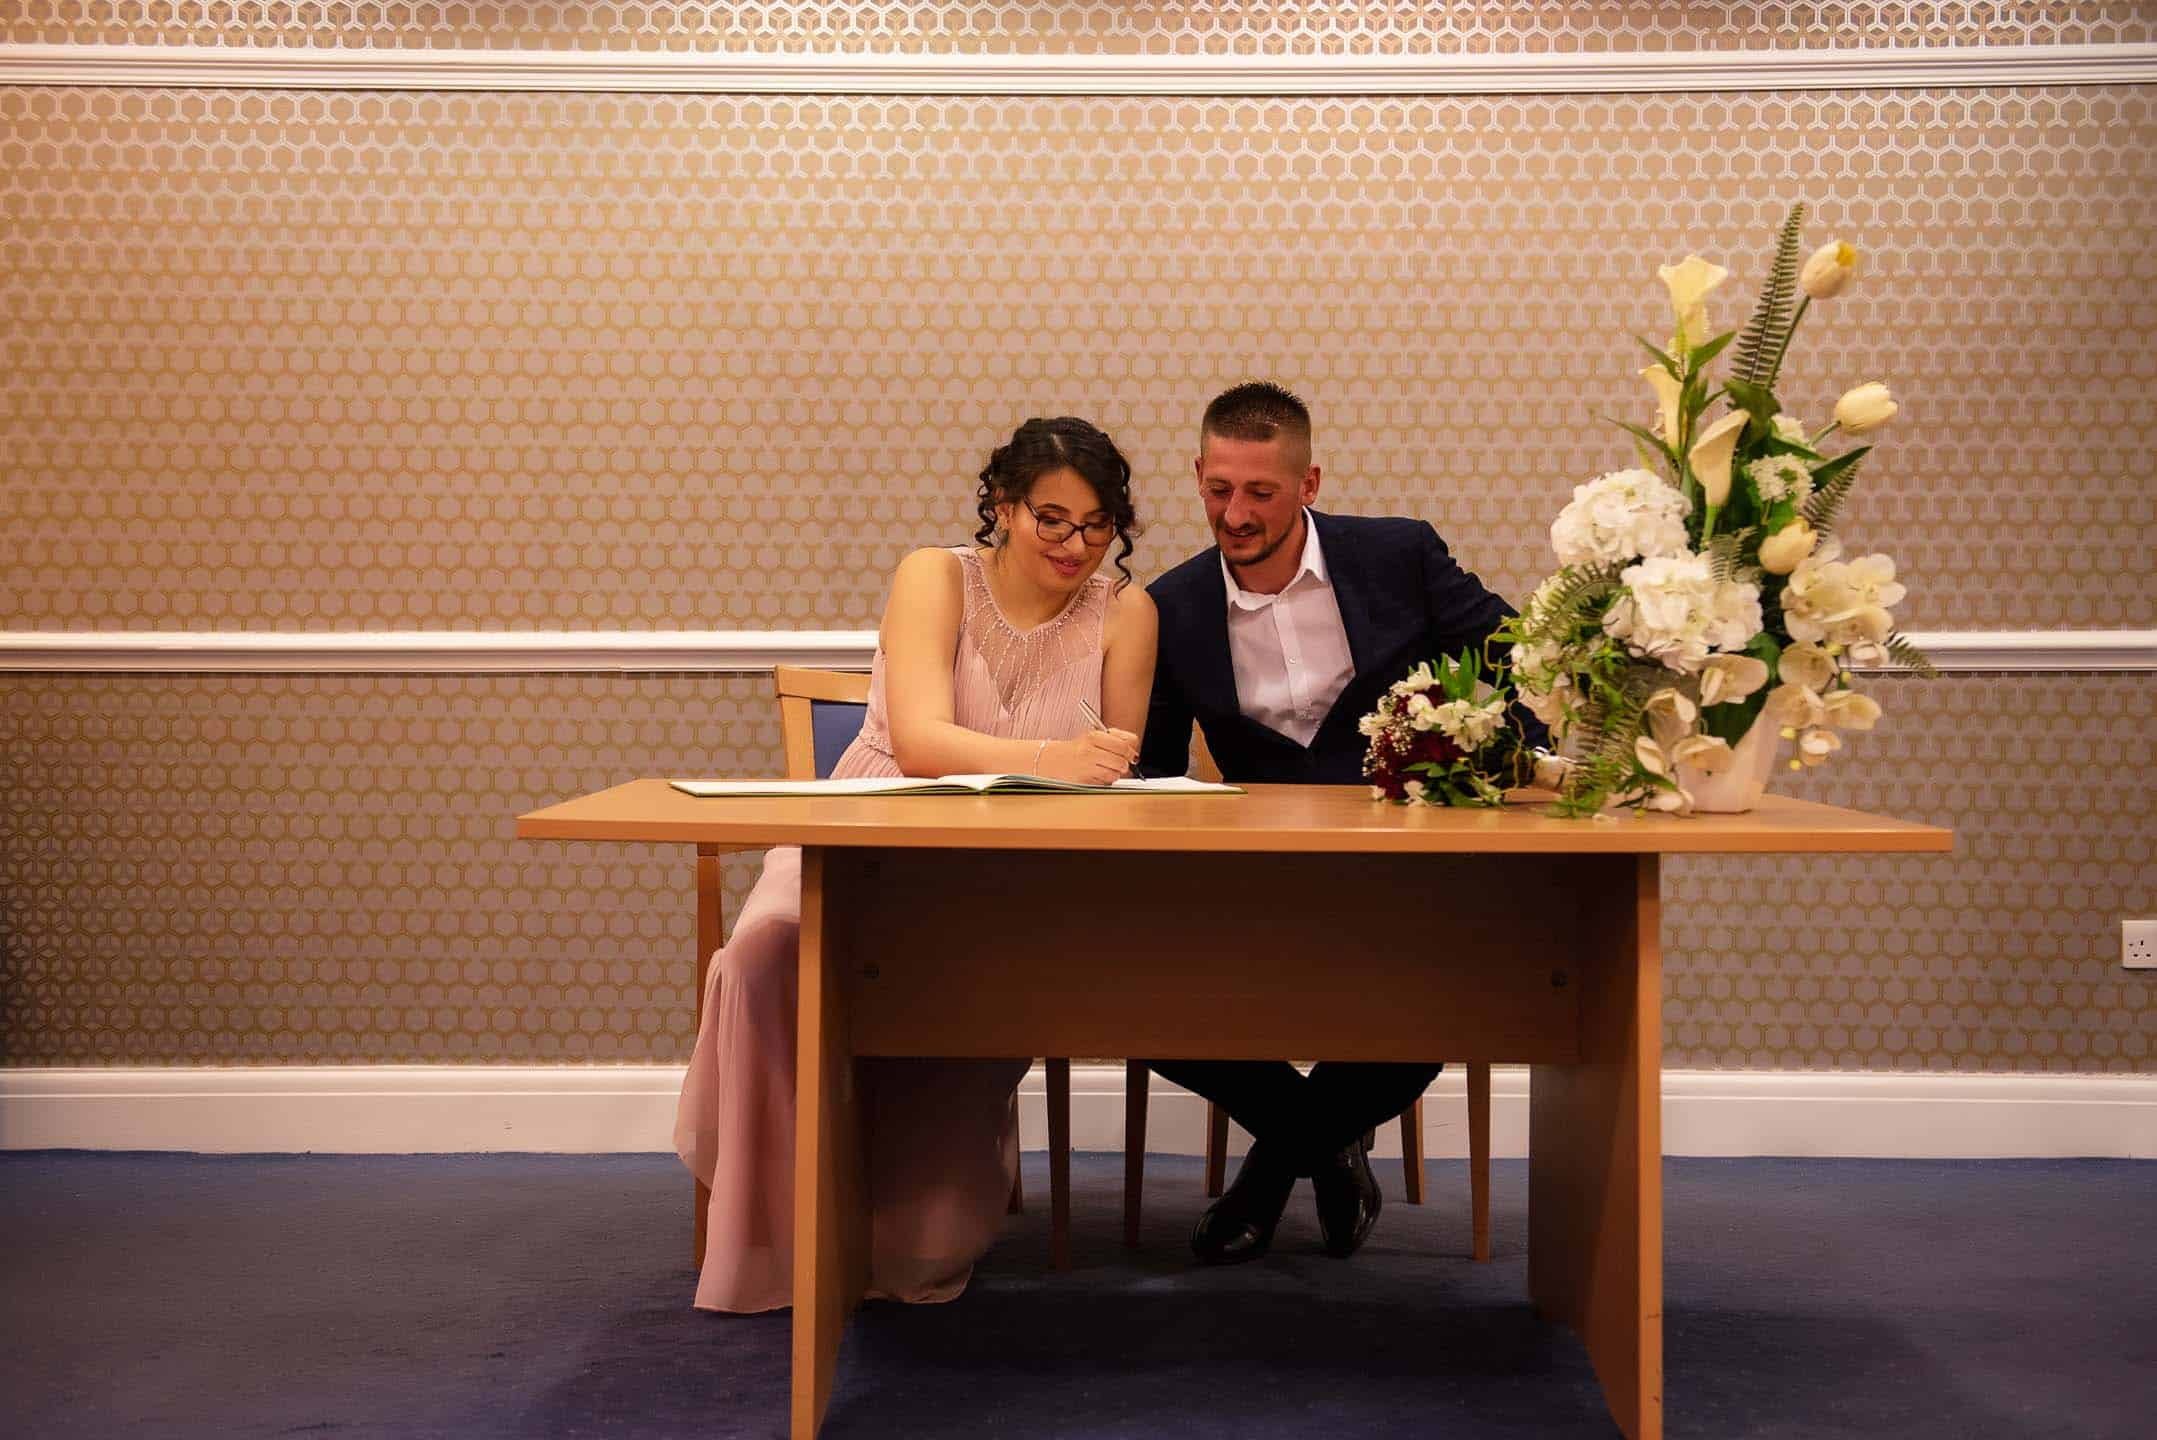 Manchester Wedding Photography by Alin Turcanu ceremony